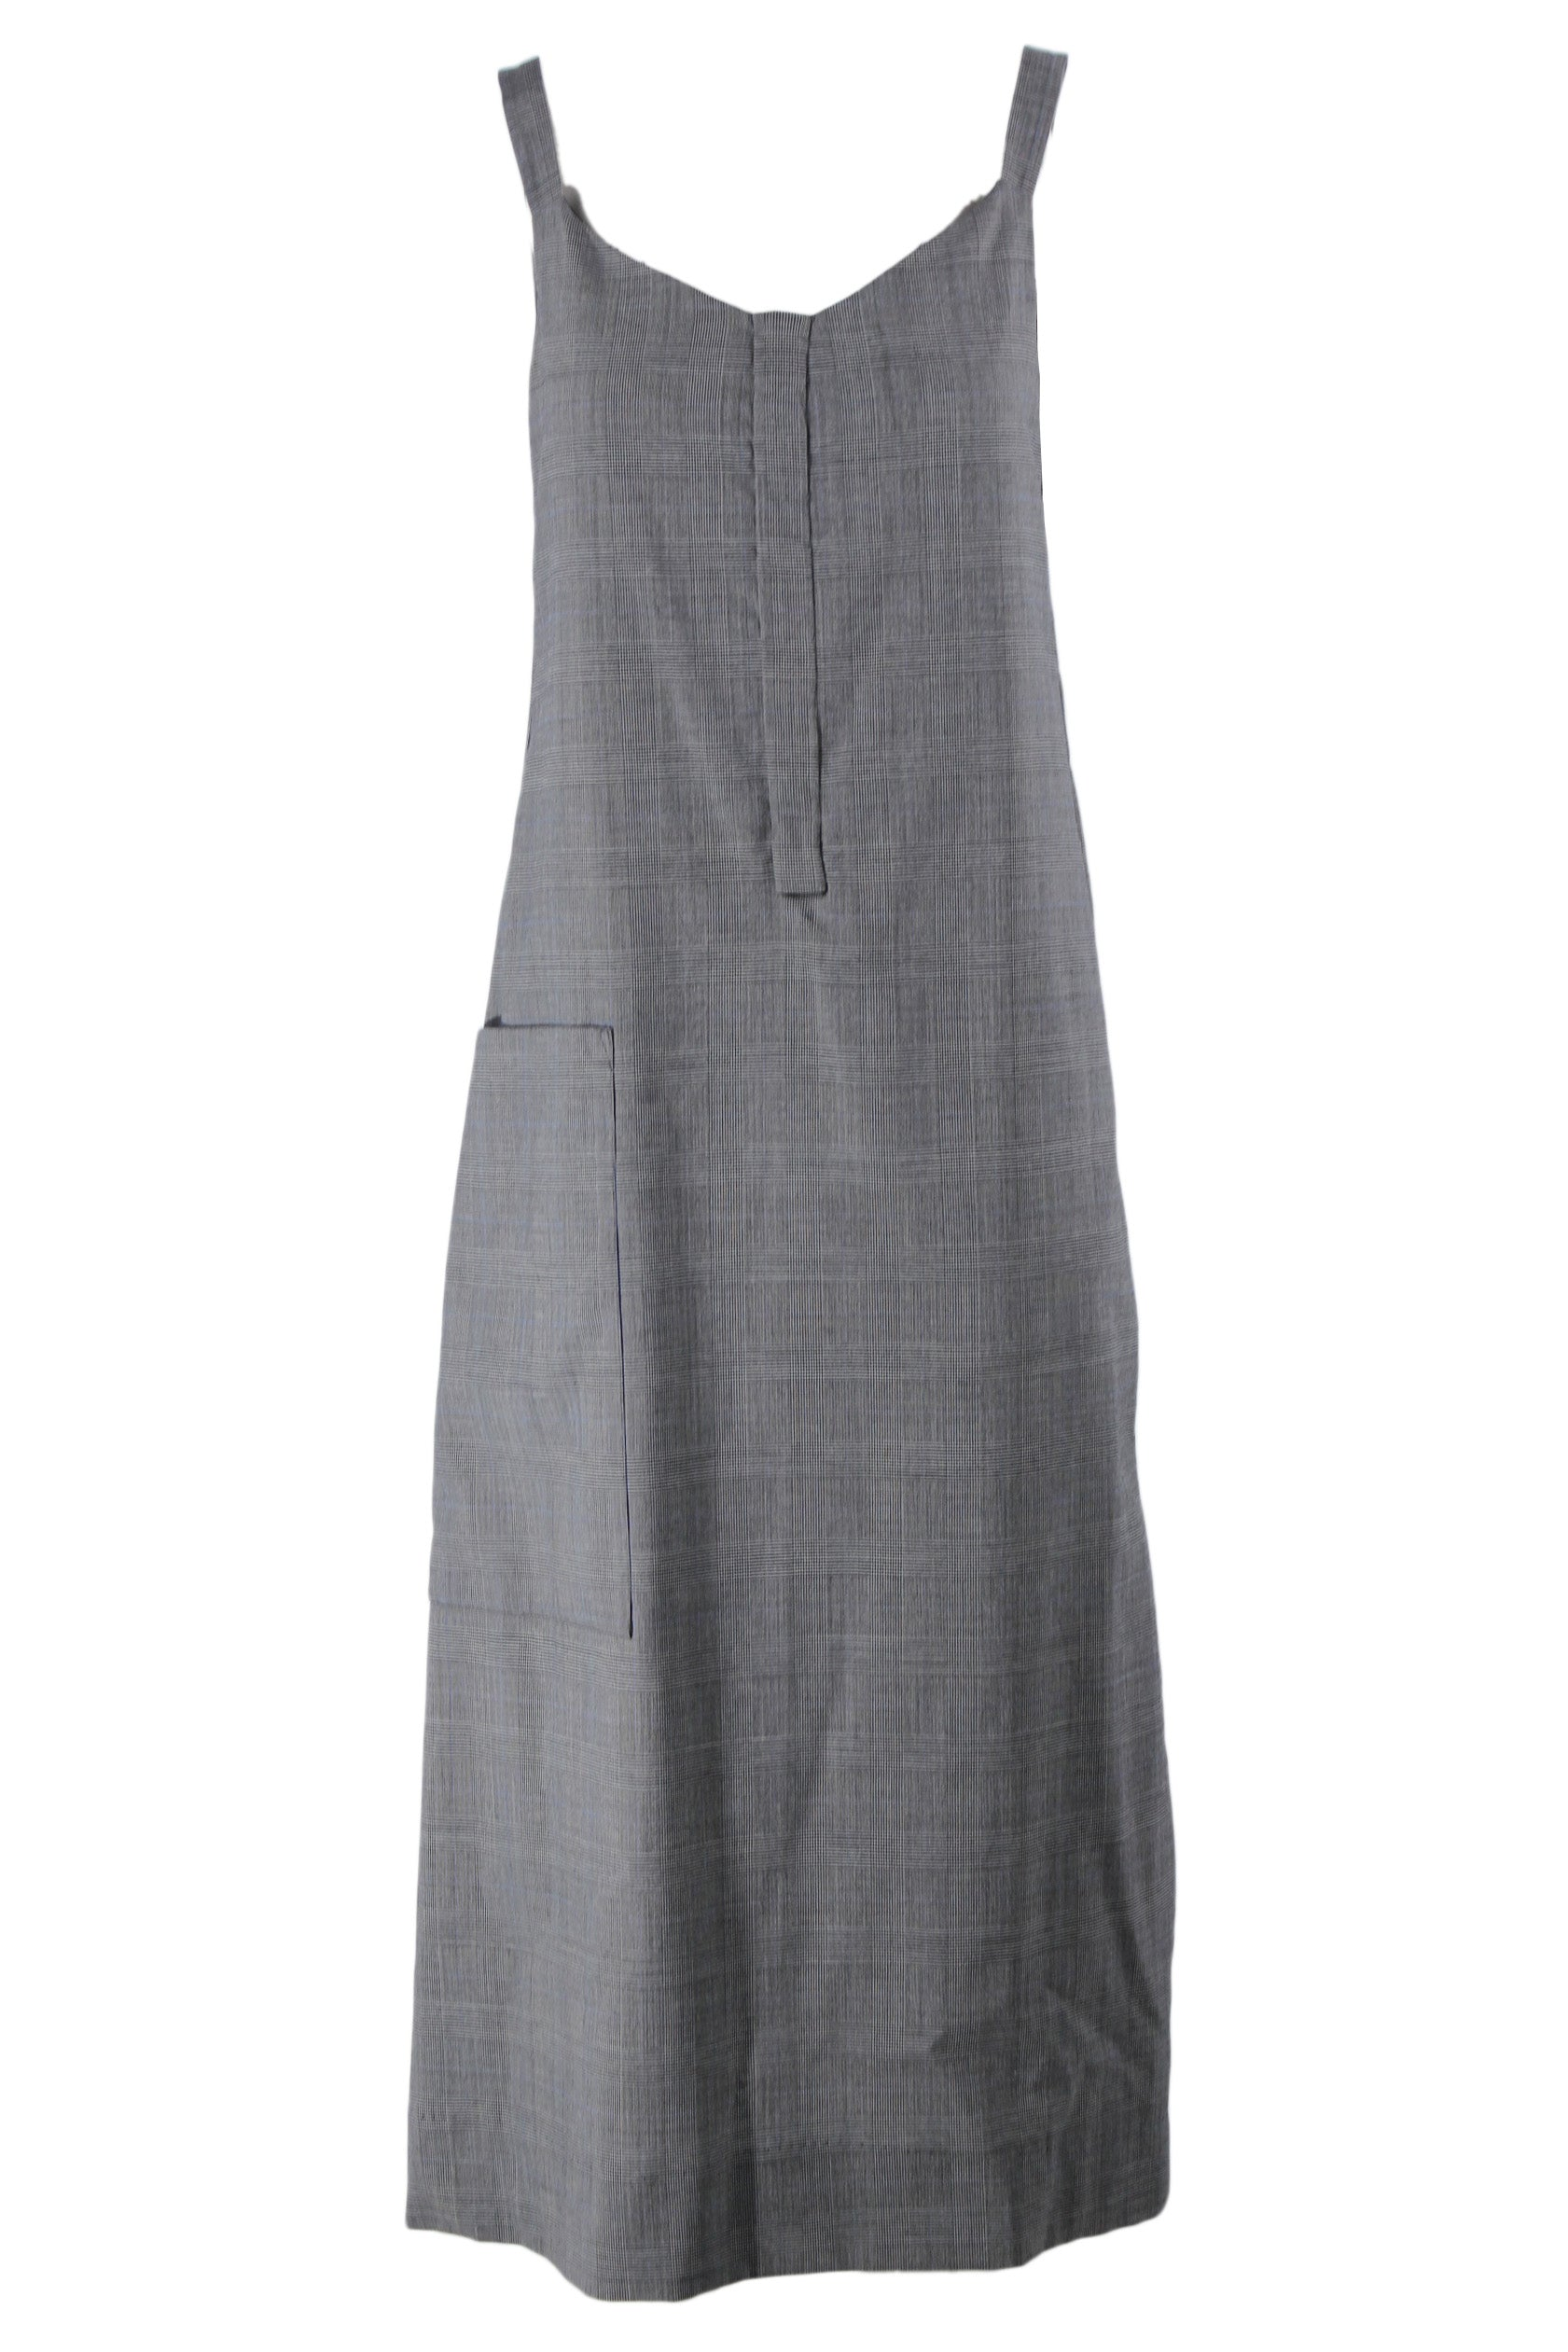 ellery grey plaid (with hints of light blue) sleeveless midi dress. featuring a-line silhouette, asymmetrical seam details, single side pocket, and v-neckline.